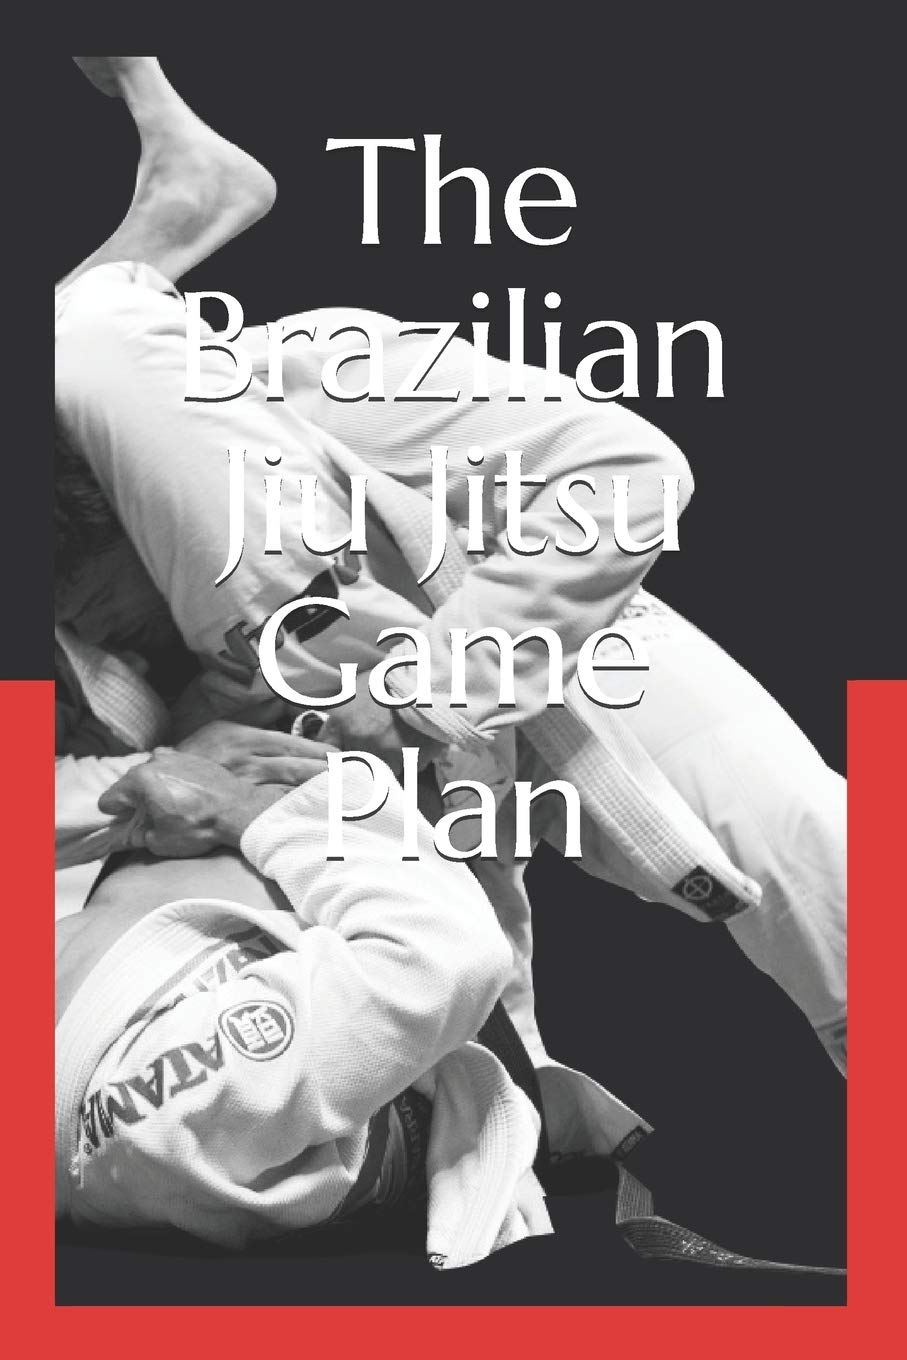 The Brazilian Jiu Jitsu Game Plan: How To Develop A BJJ Game